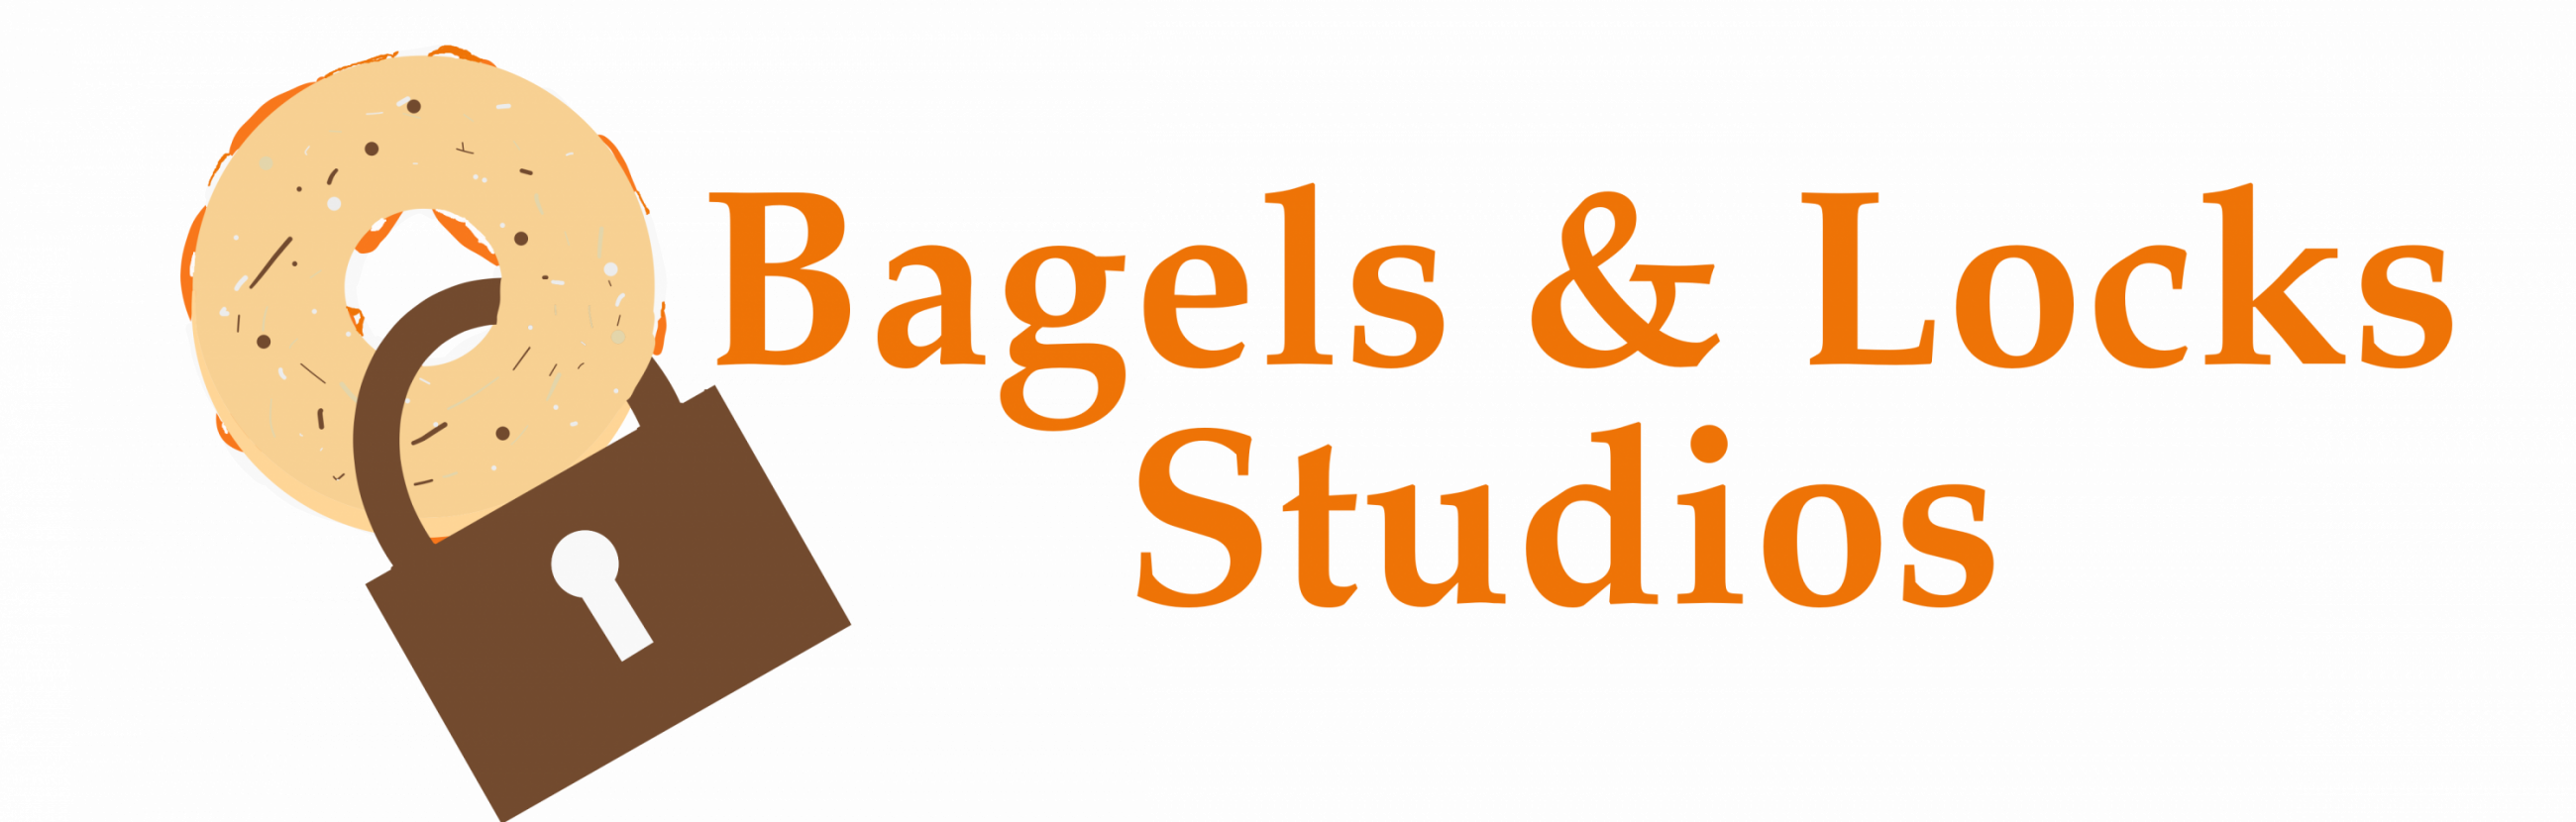 Bagels & Locks Studios